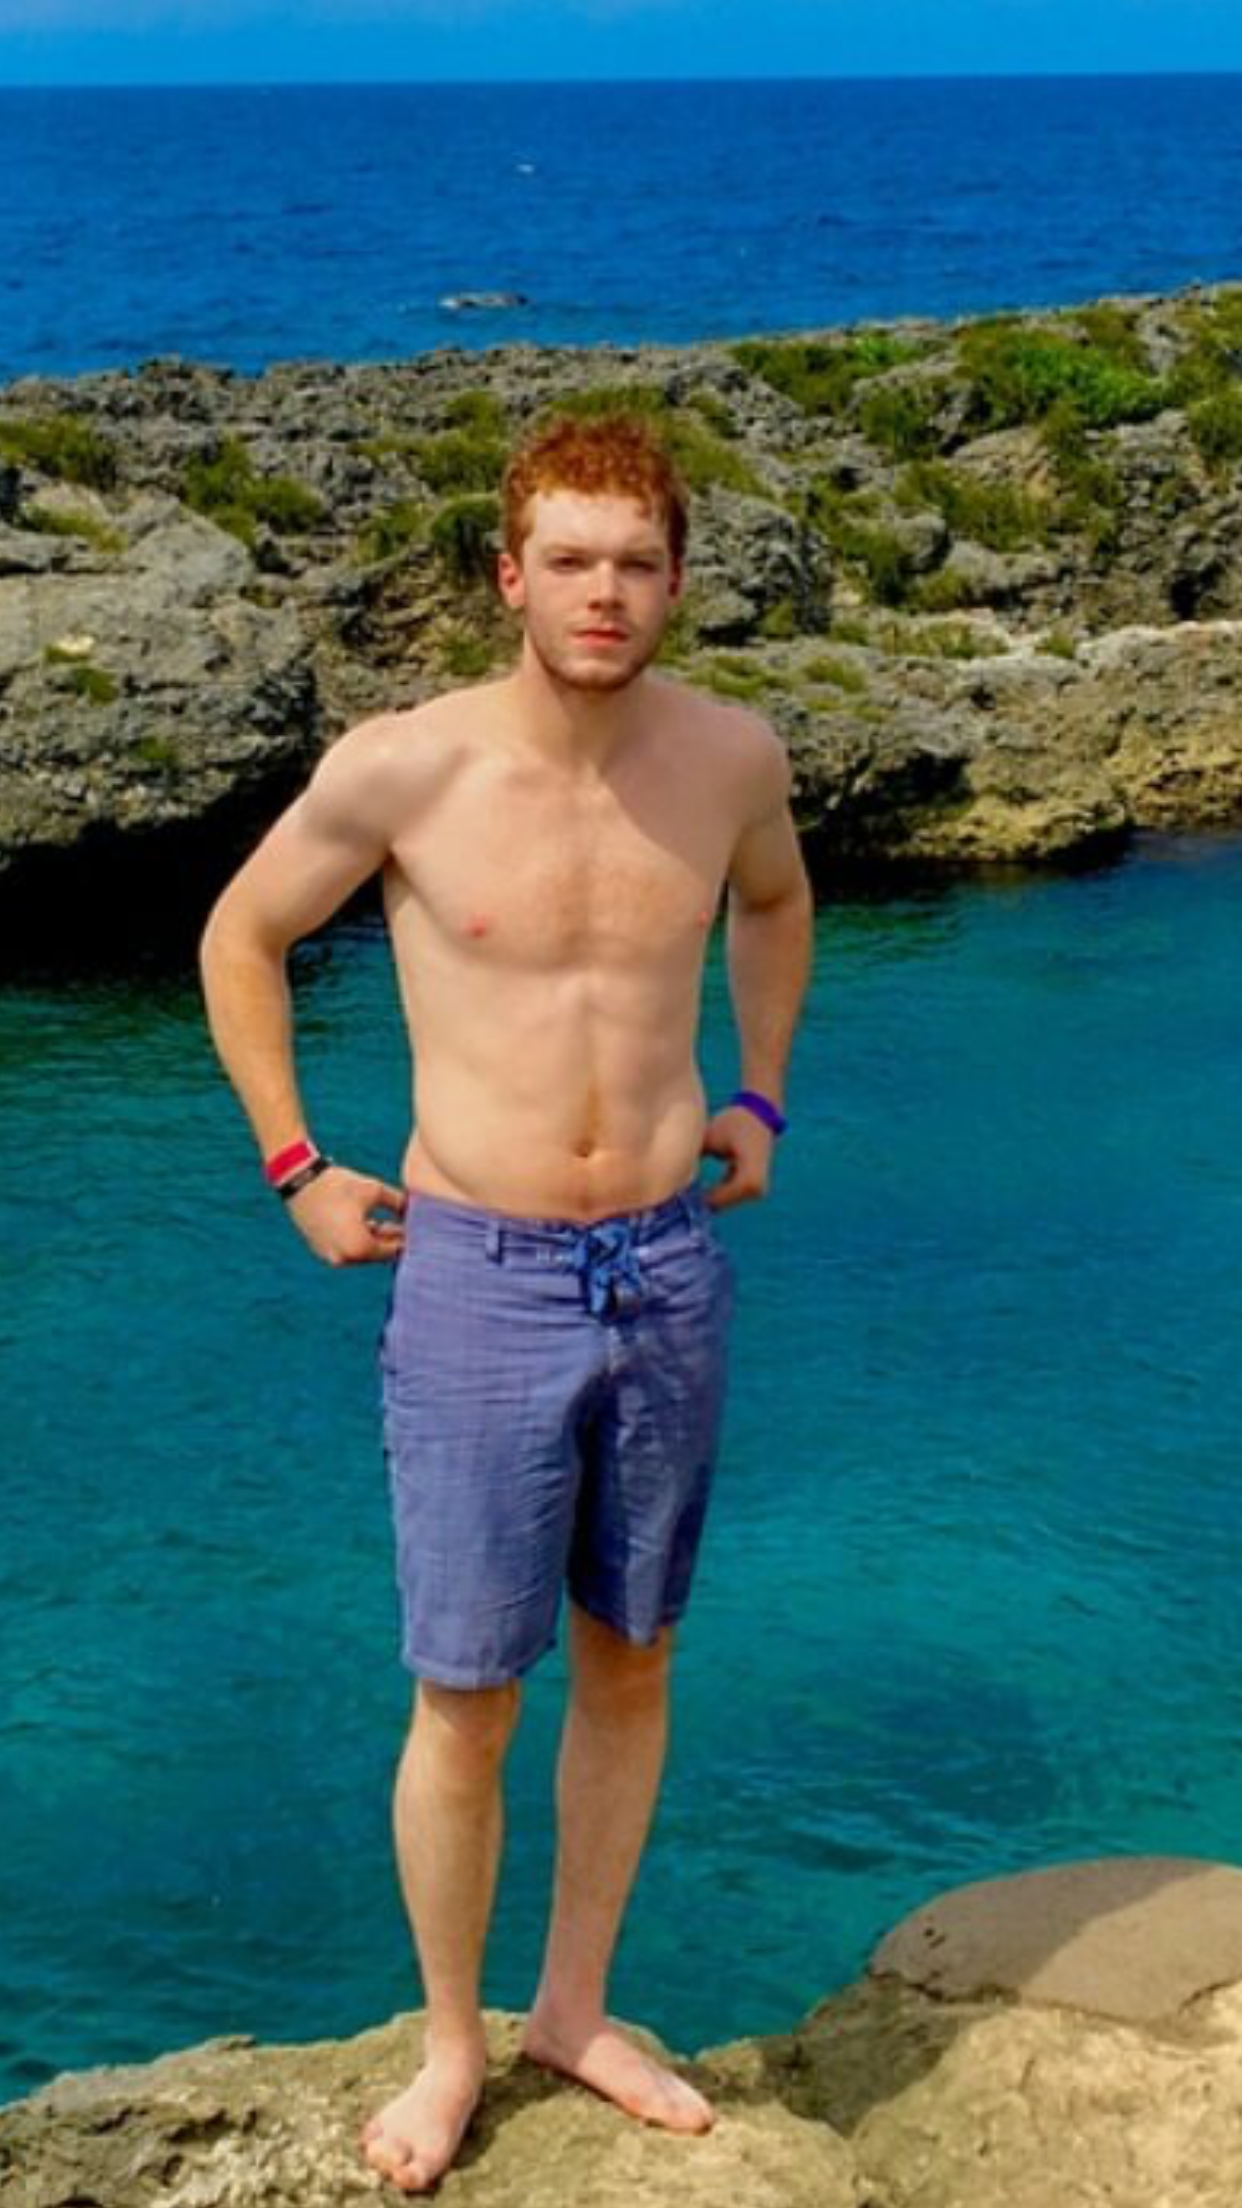 Cameron Monaghan ginger shirtless hot as hell | Cameron ...